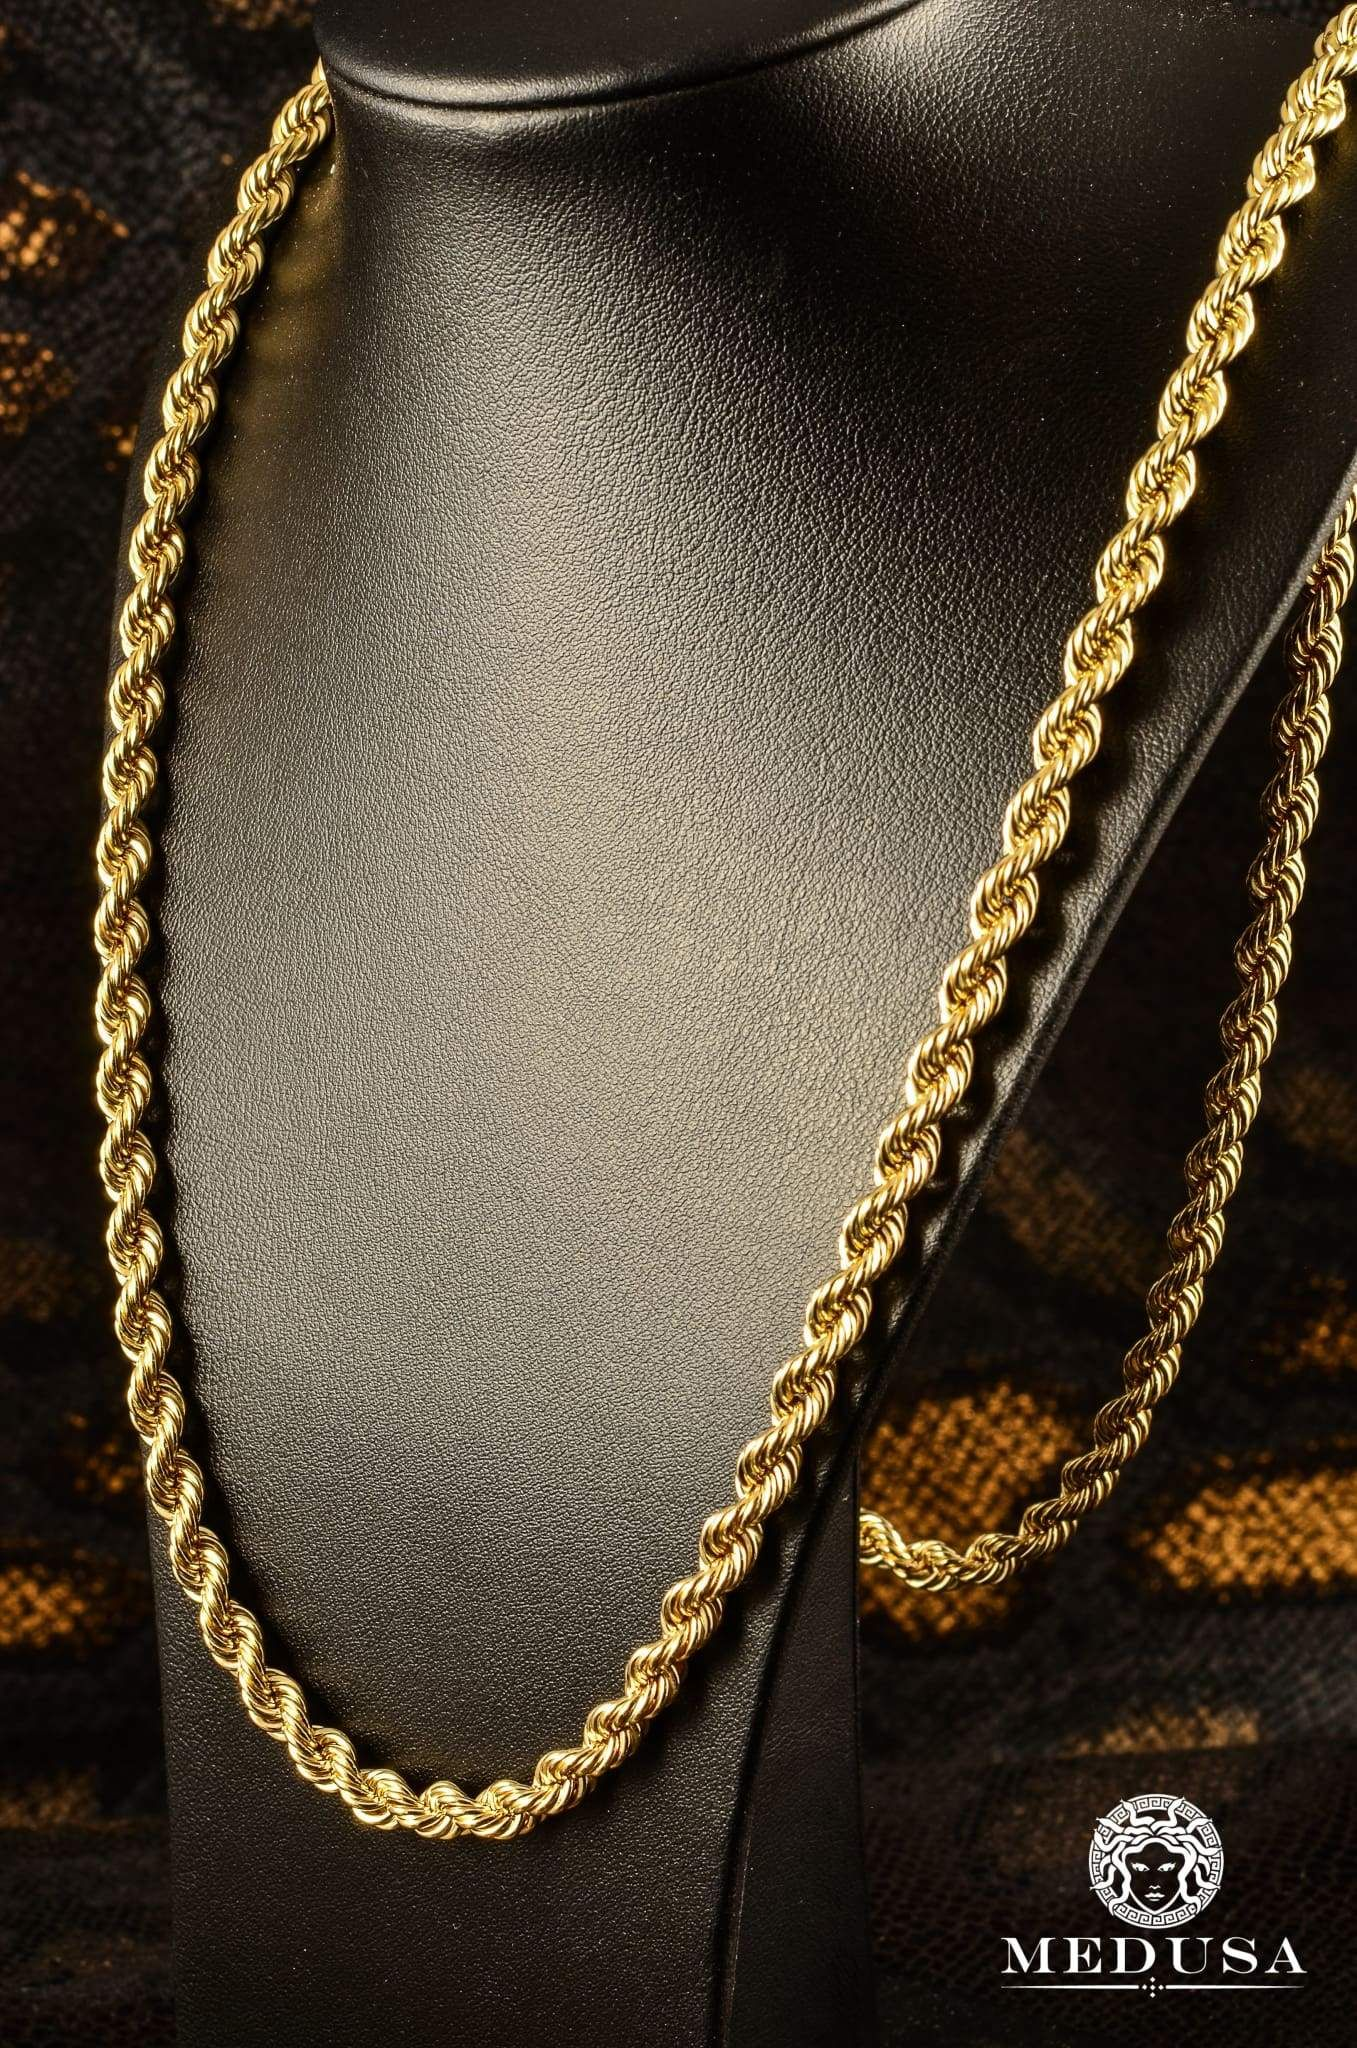 6mm Torsade Gold Chains For Men Gold Chain Jewelry Chain